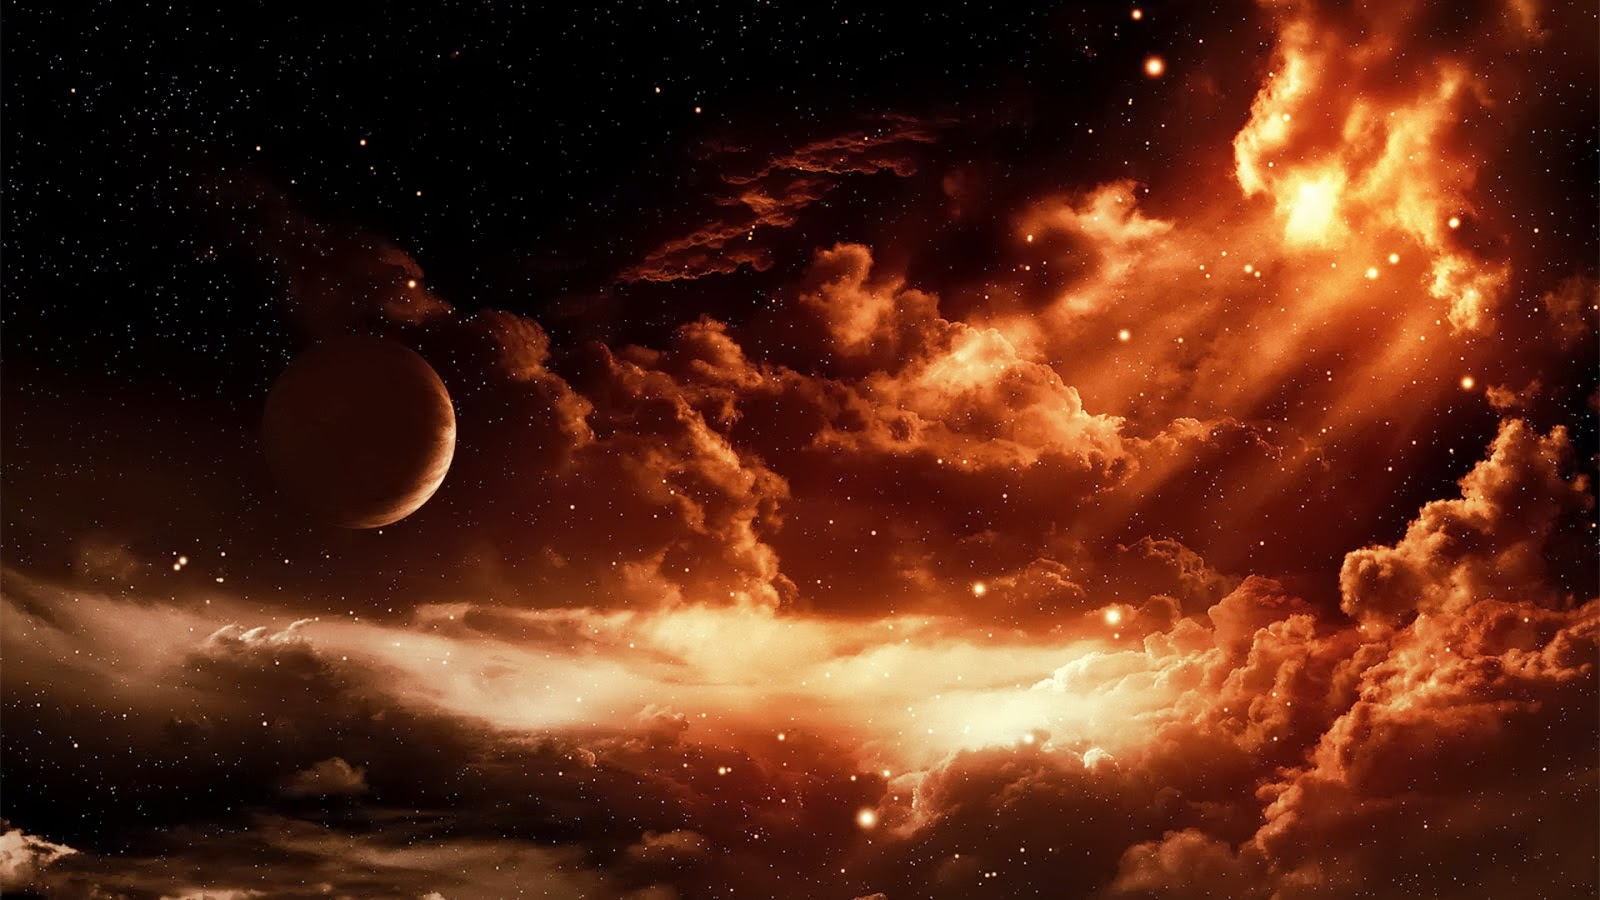 Download Space Wallpaper 1920x1080 In High Resolution For Free Definition Backgrounds HD Wallpapers Desktop And Widescreen